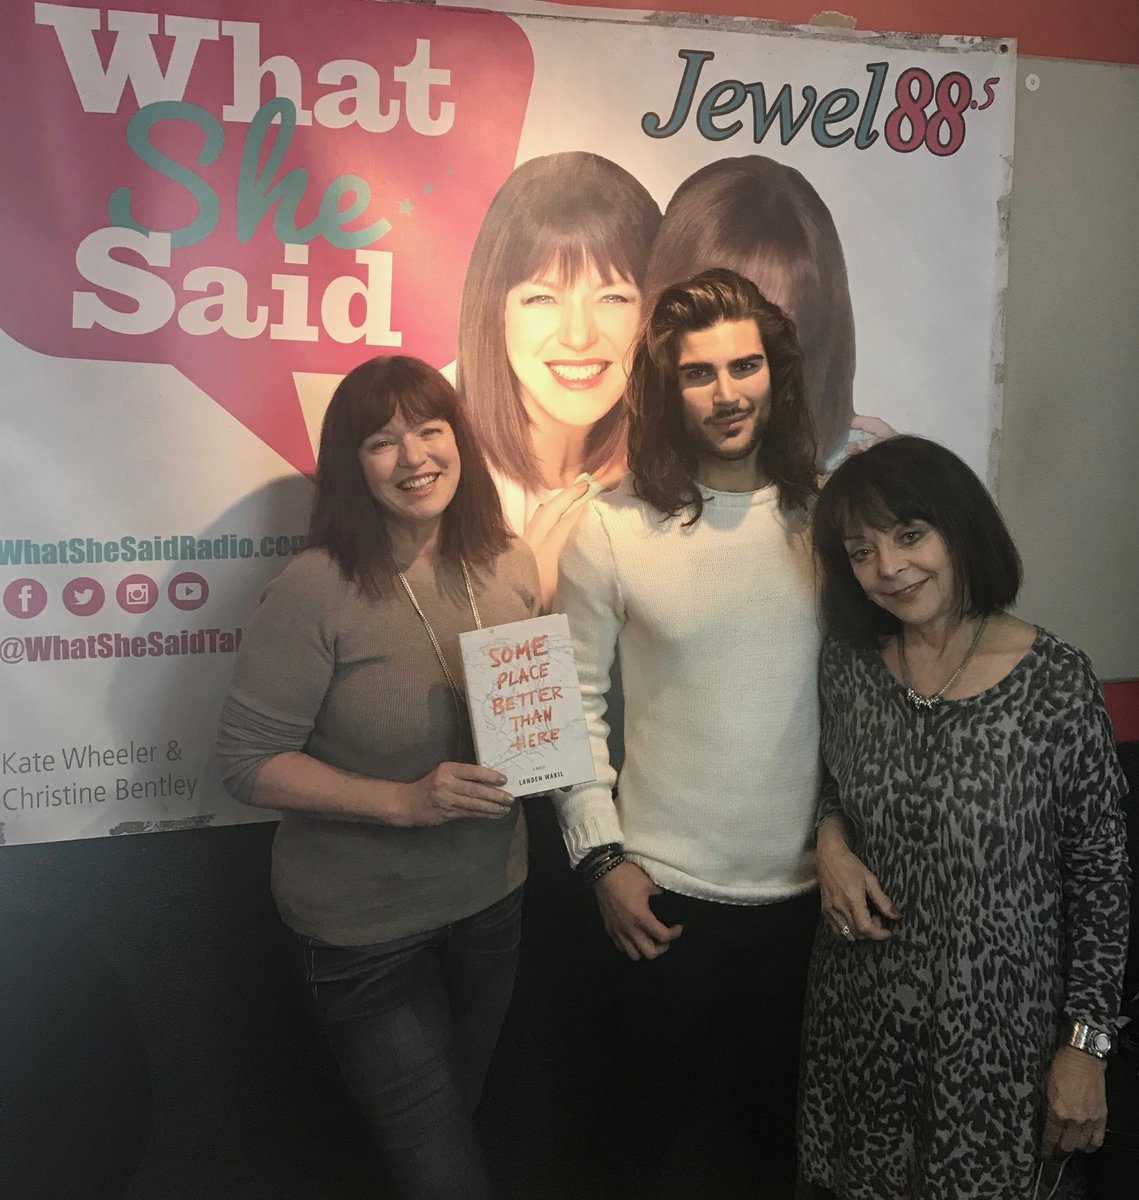 """#TUNEIN to Jewel 88.5 at 10 p.m. tonight with young author, @landenwakil on @whatshesaidtalk discussing his debut novel """"Some Place Better Than Here"""" - #author #writer #YA #novel #book #onair #live #media #evanov #radio #interview #fiction #read #bookclub<br>http://pic.twitter.com/w0YGSAVCCC"""